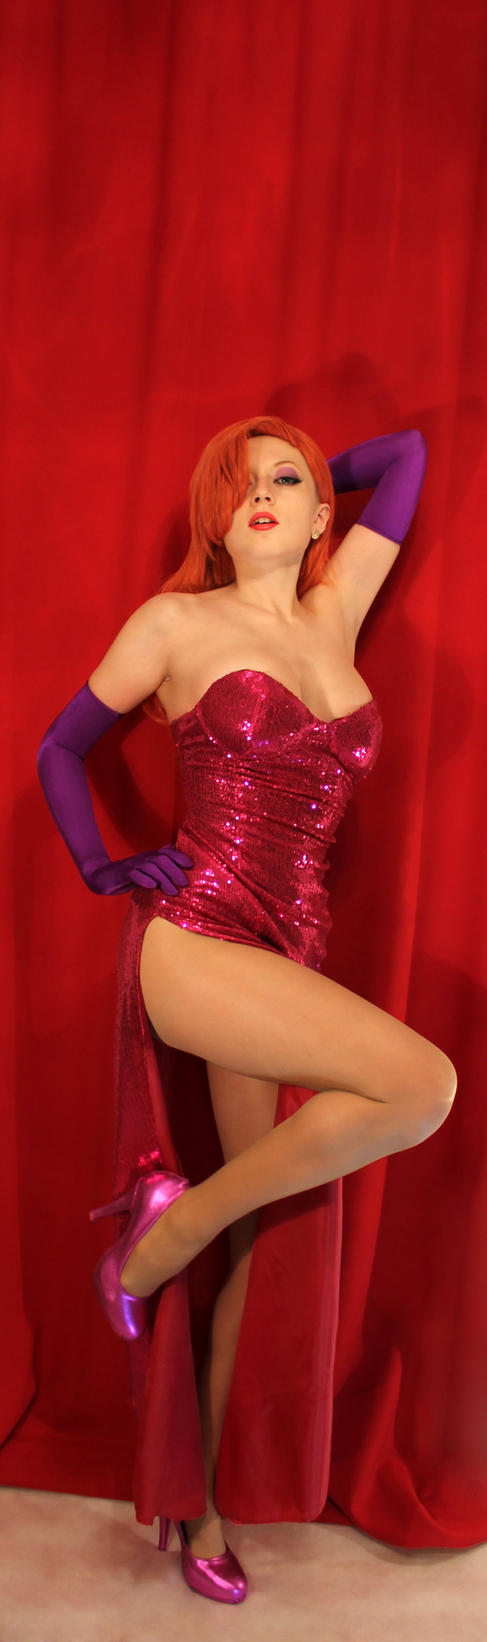 Jessica Rabbit by PinkMurka